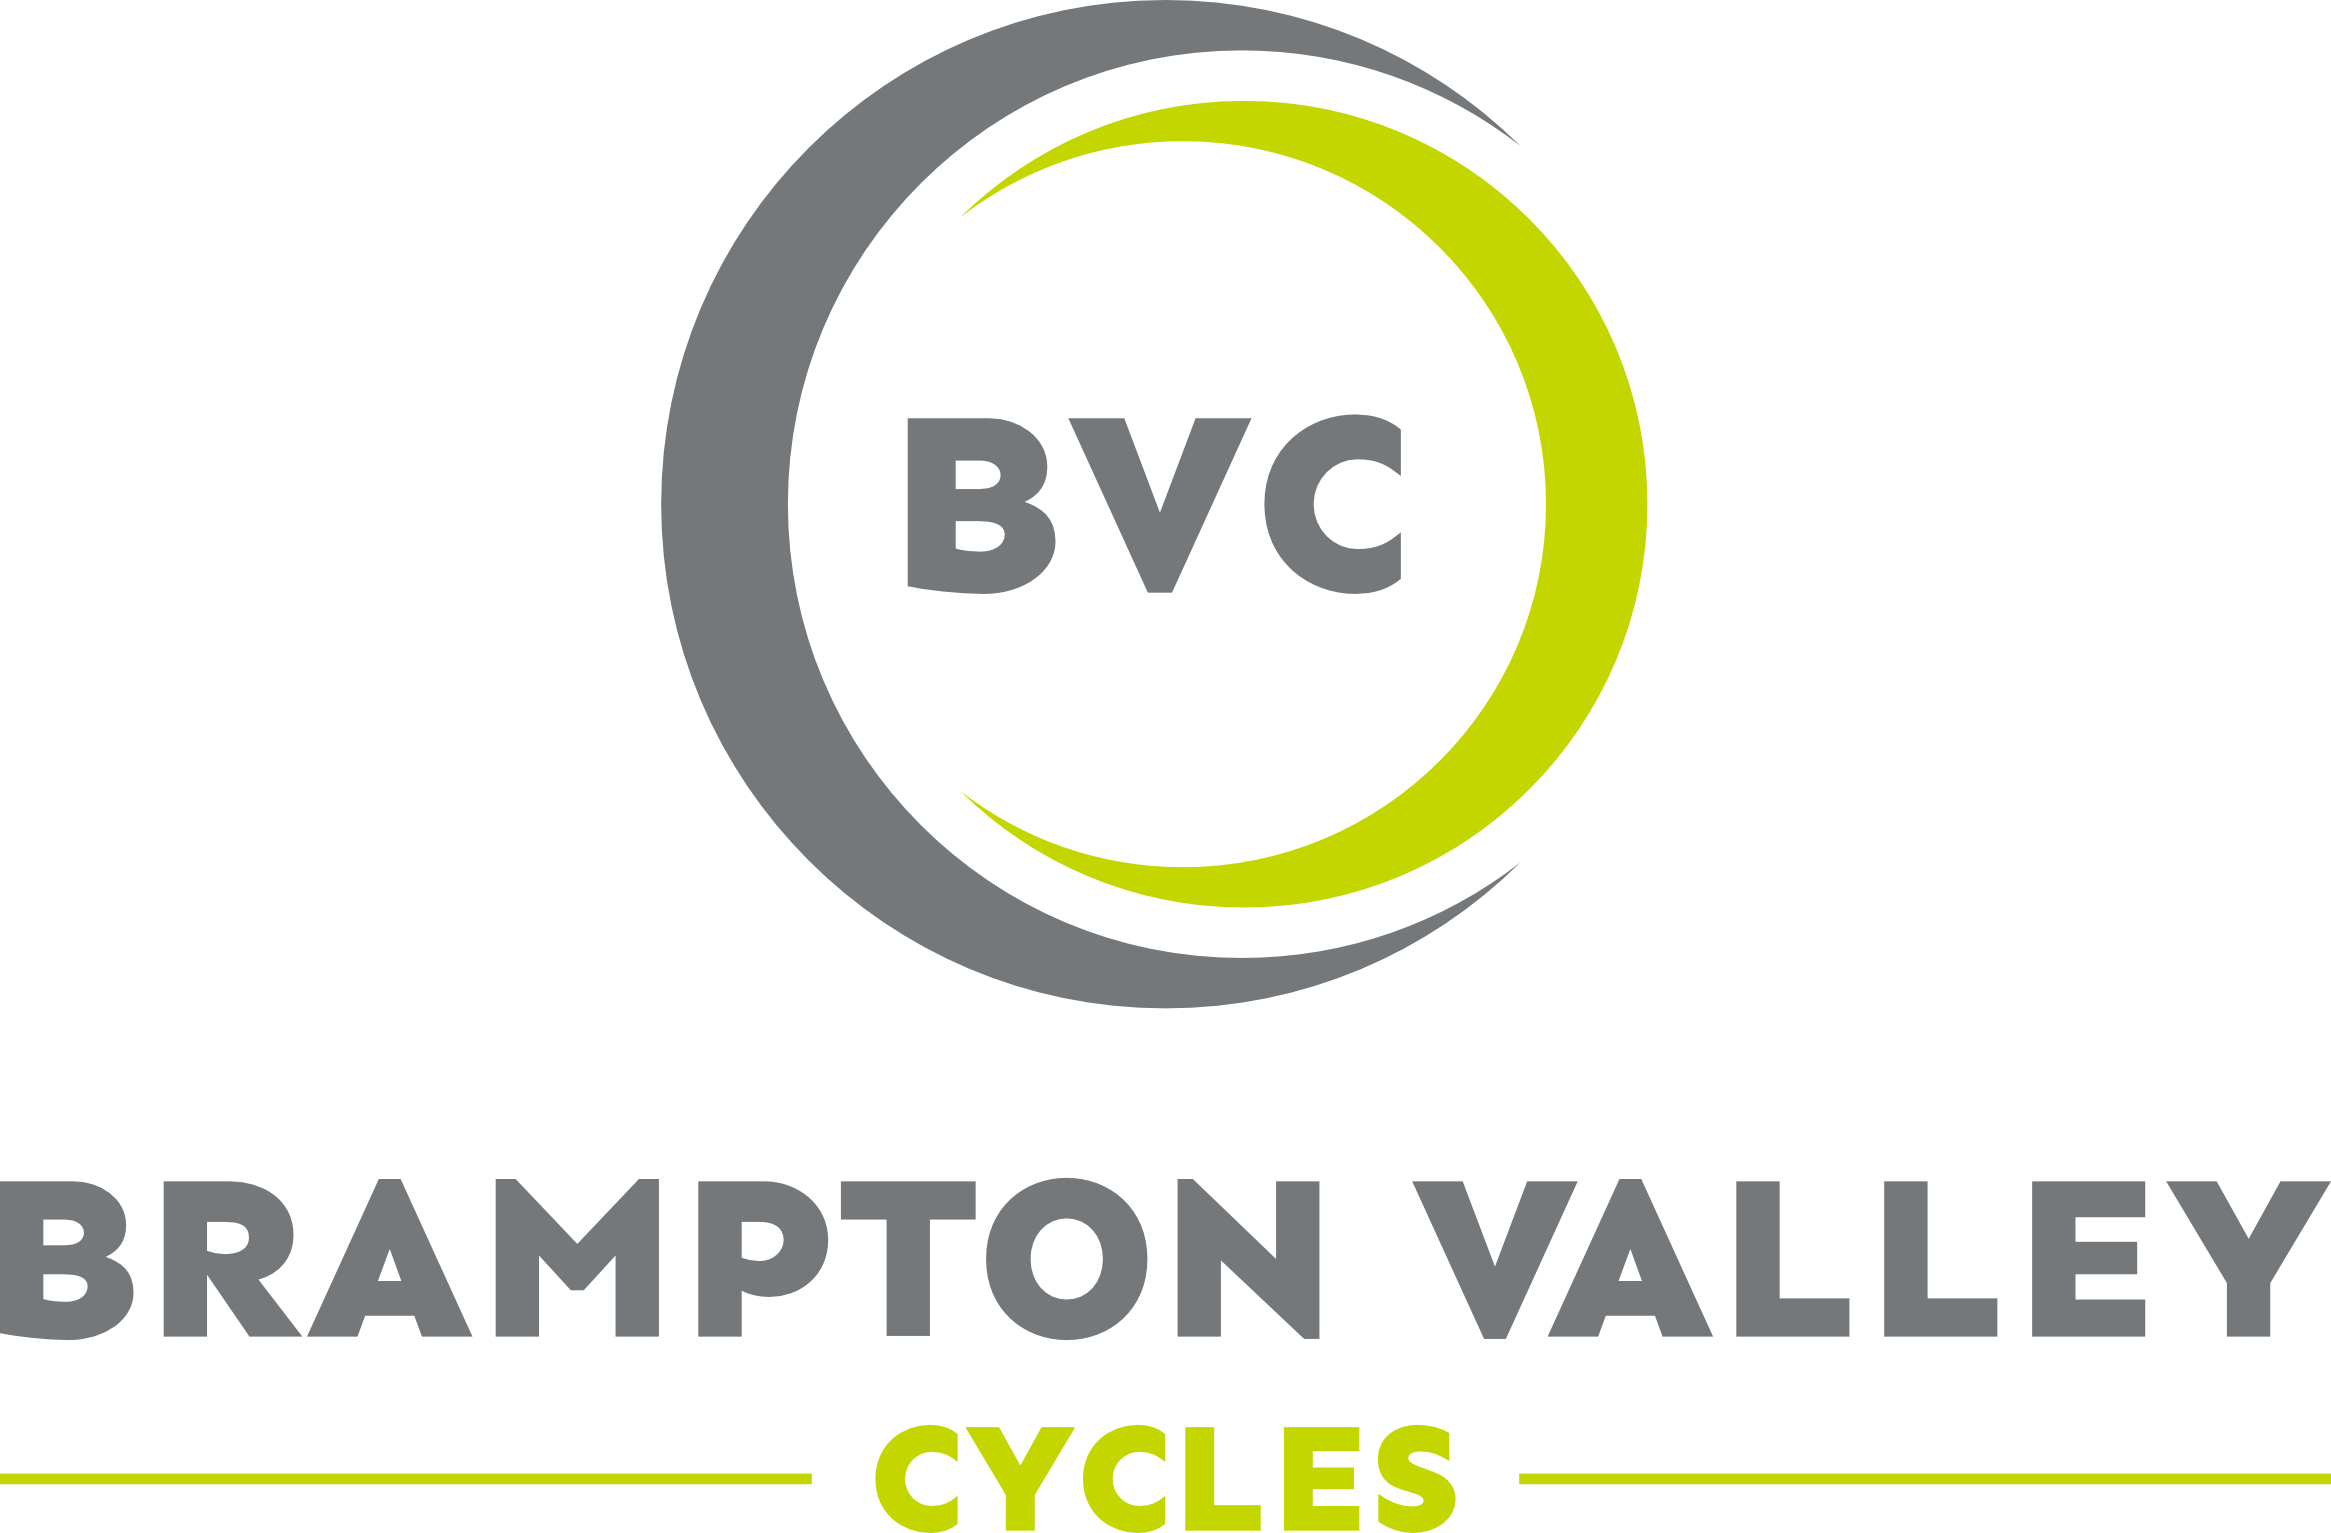 Brampton Valley Cycles